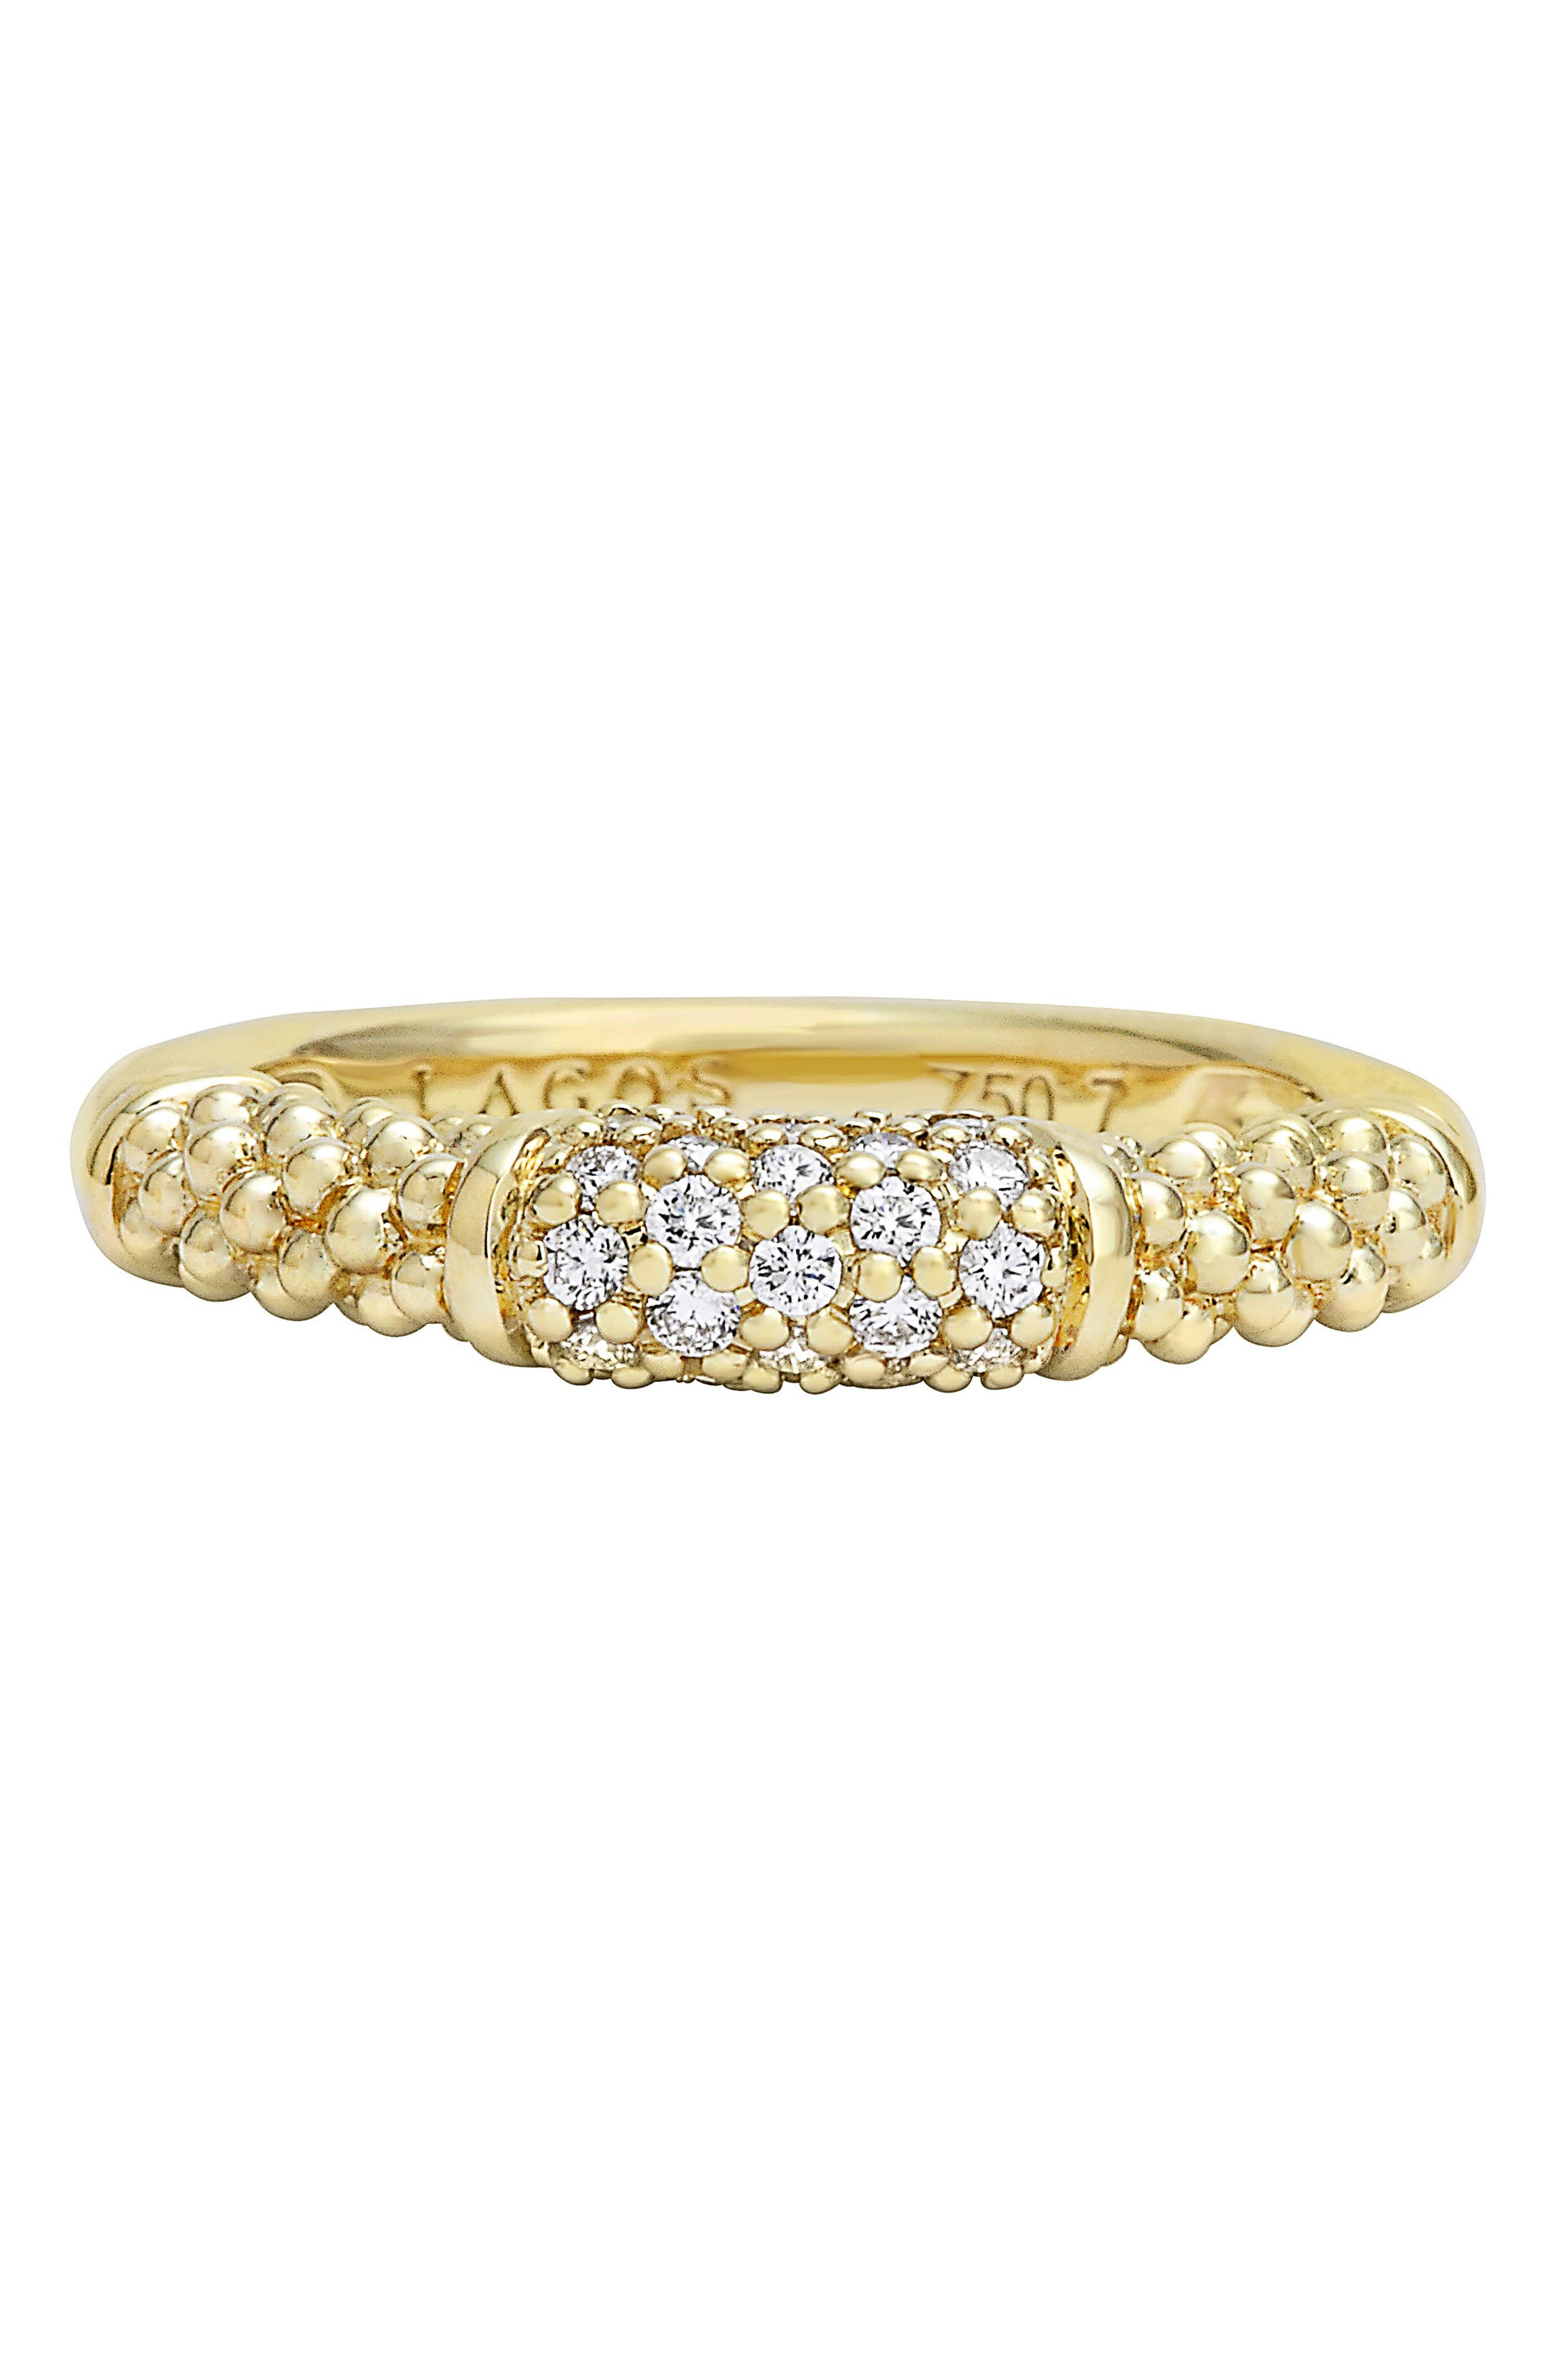 Caviar Diamond Ring,                             Alternate thumbnail 5, color,                             GOLD